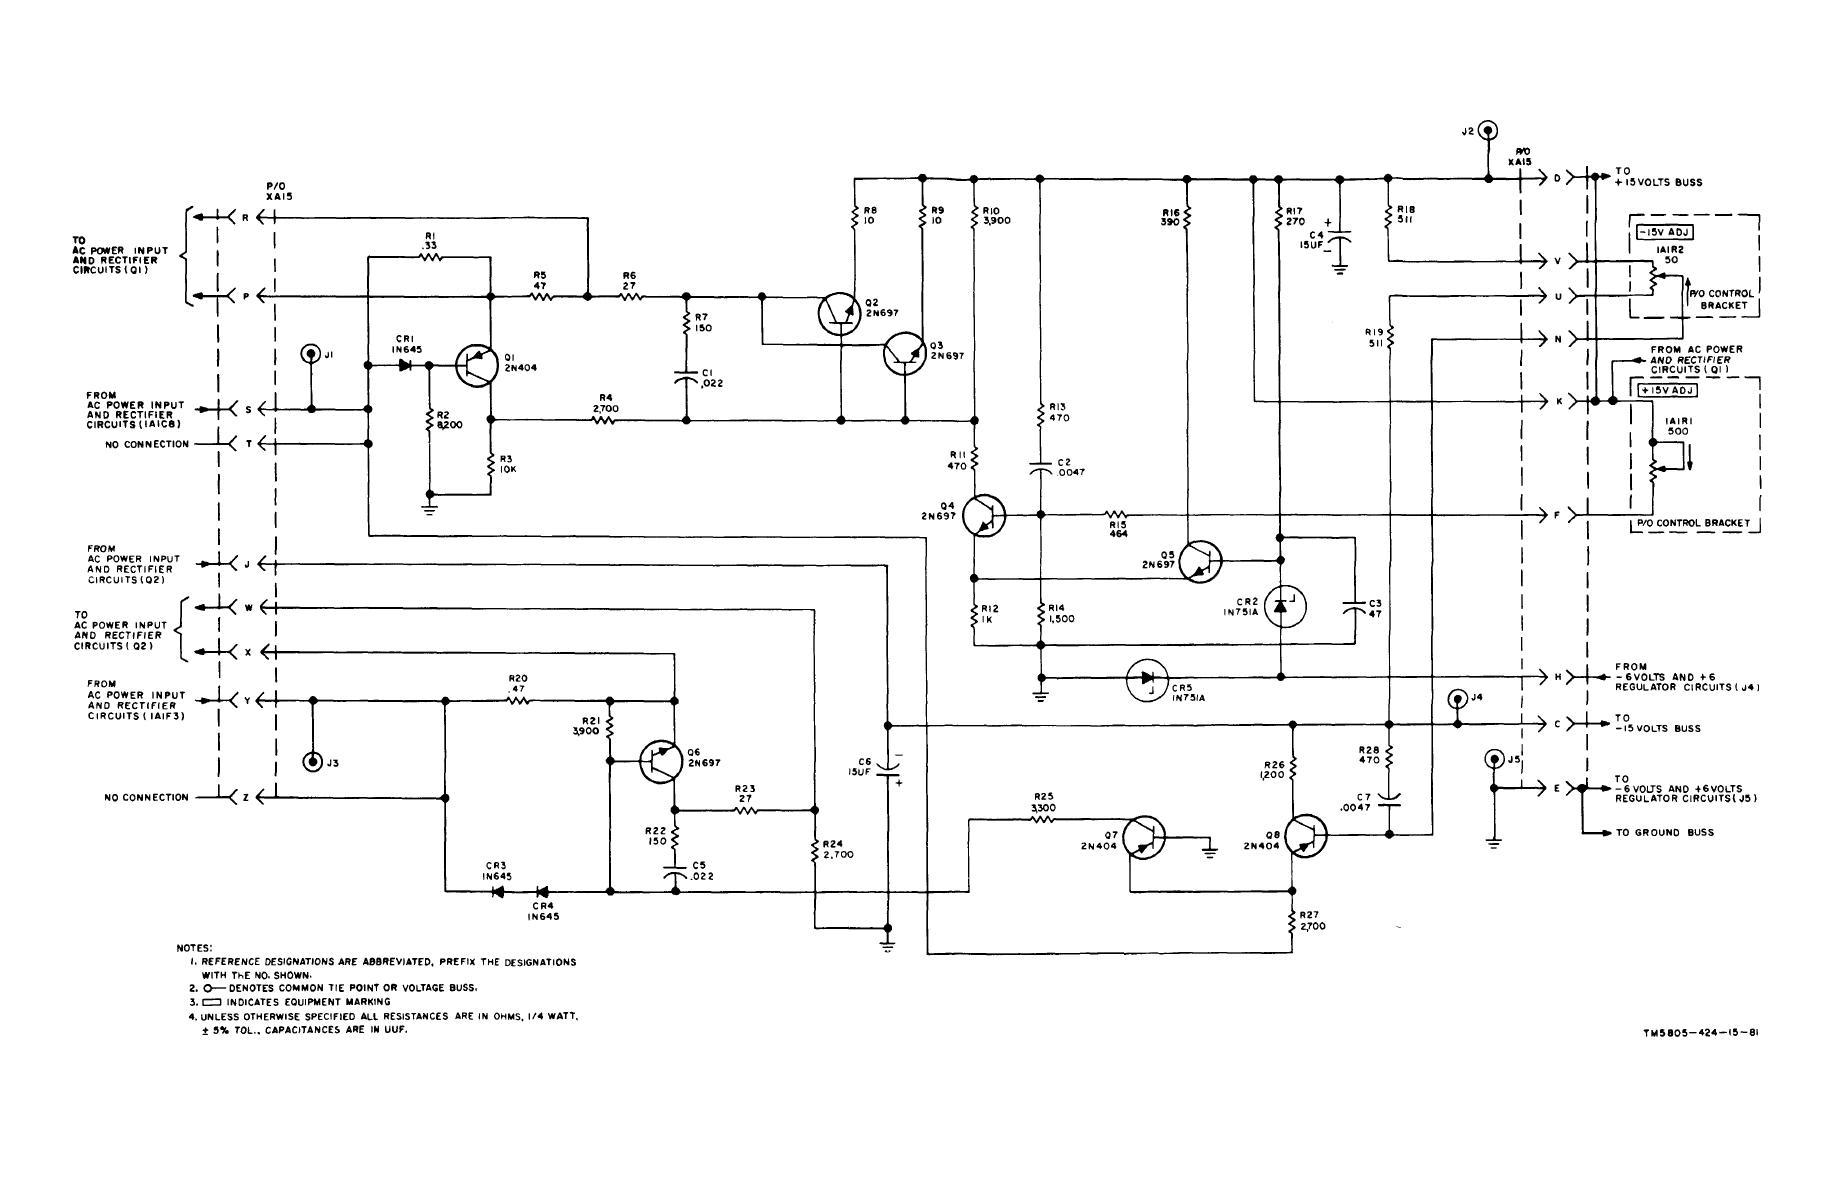 Pc Power Cord Wiring Diagram 28 Images Of Lm7805 Powersupplycircuit Circuit Seekiccom Tm 11 5805 424 150199im Figure 8 19 15 Volt Supply Regulator Circuits Assembly A15